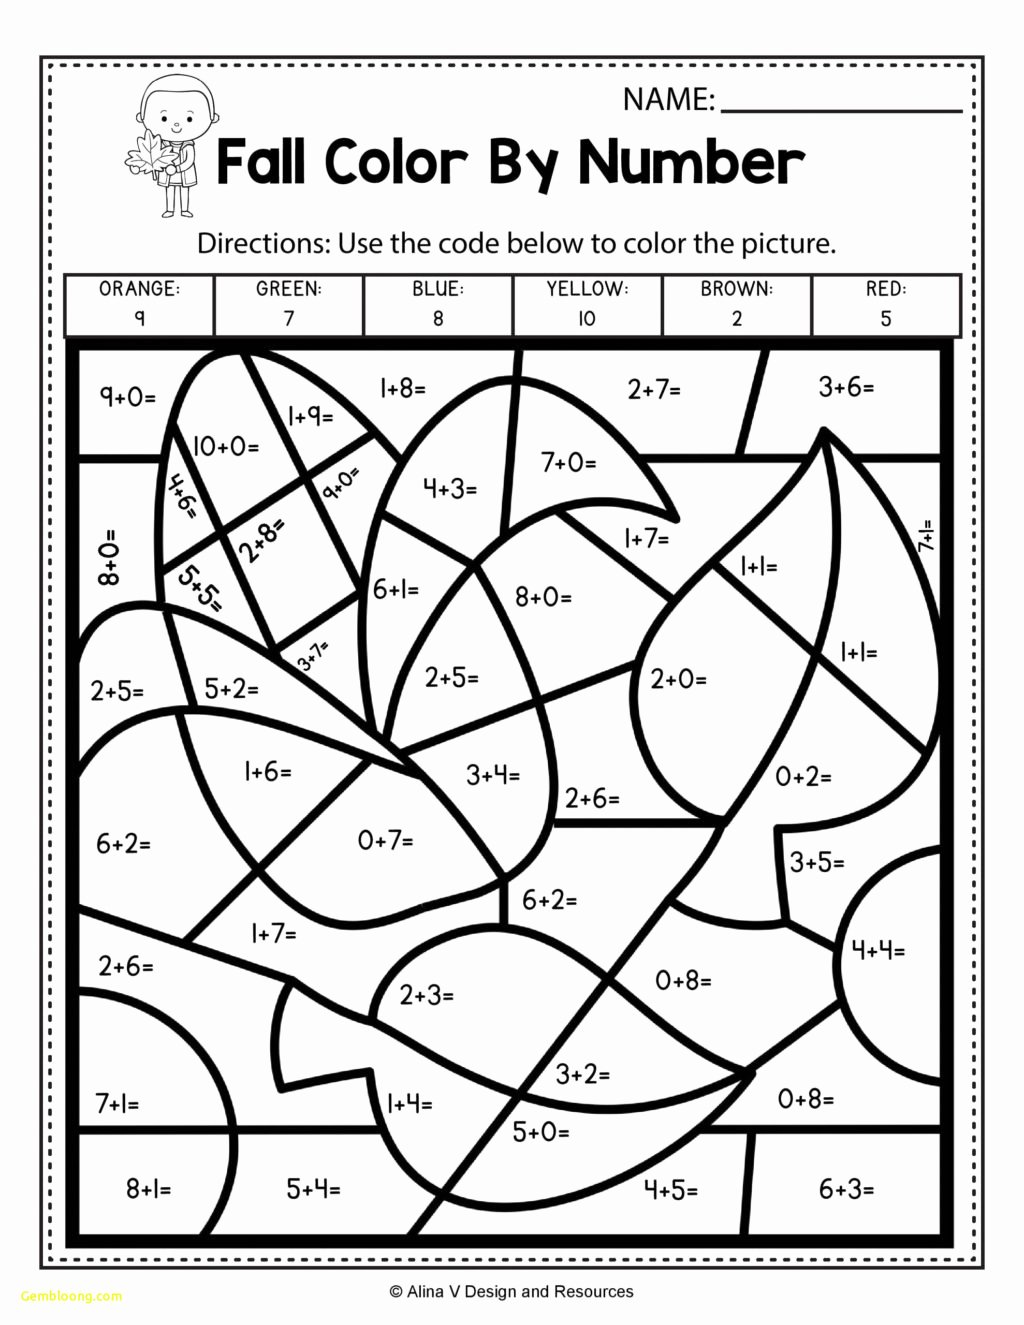 Division Coloring Worksheets 3rd Grade Fresh Freetiplication Coloring Worksheets Pdf Printable and